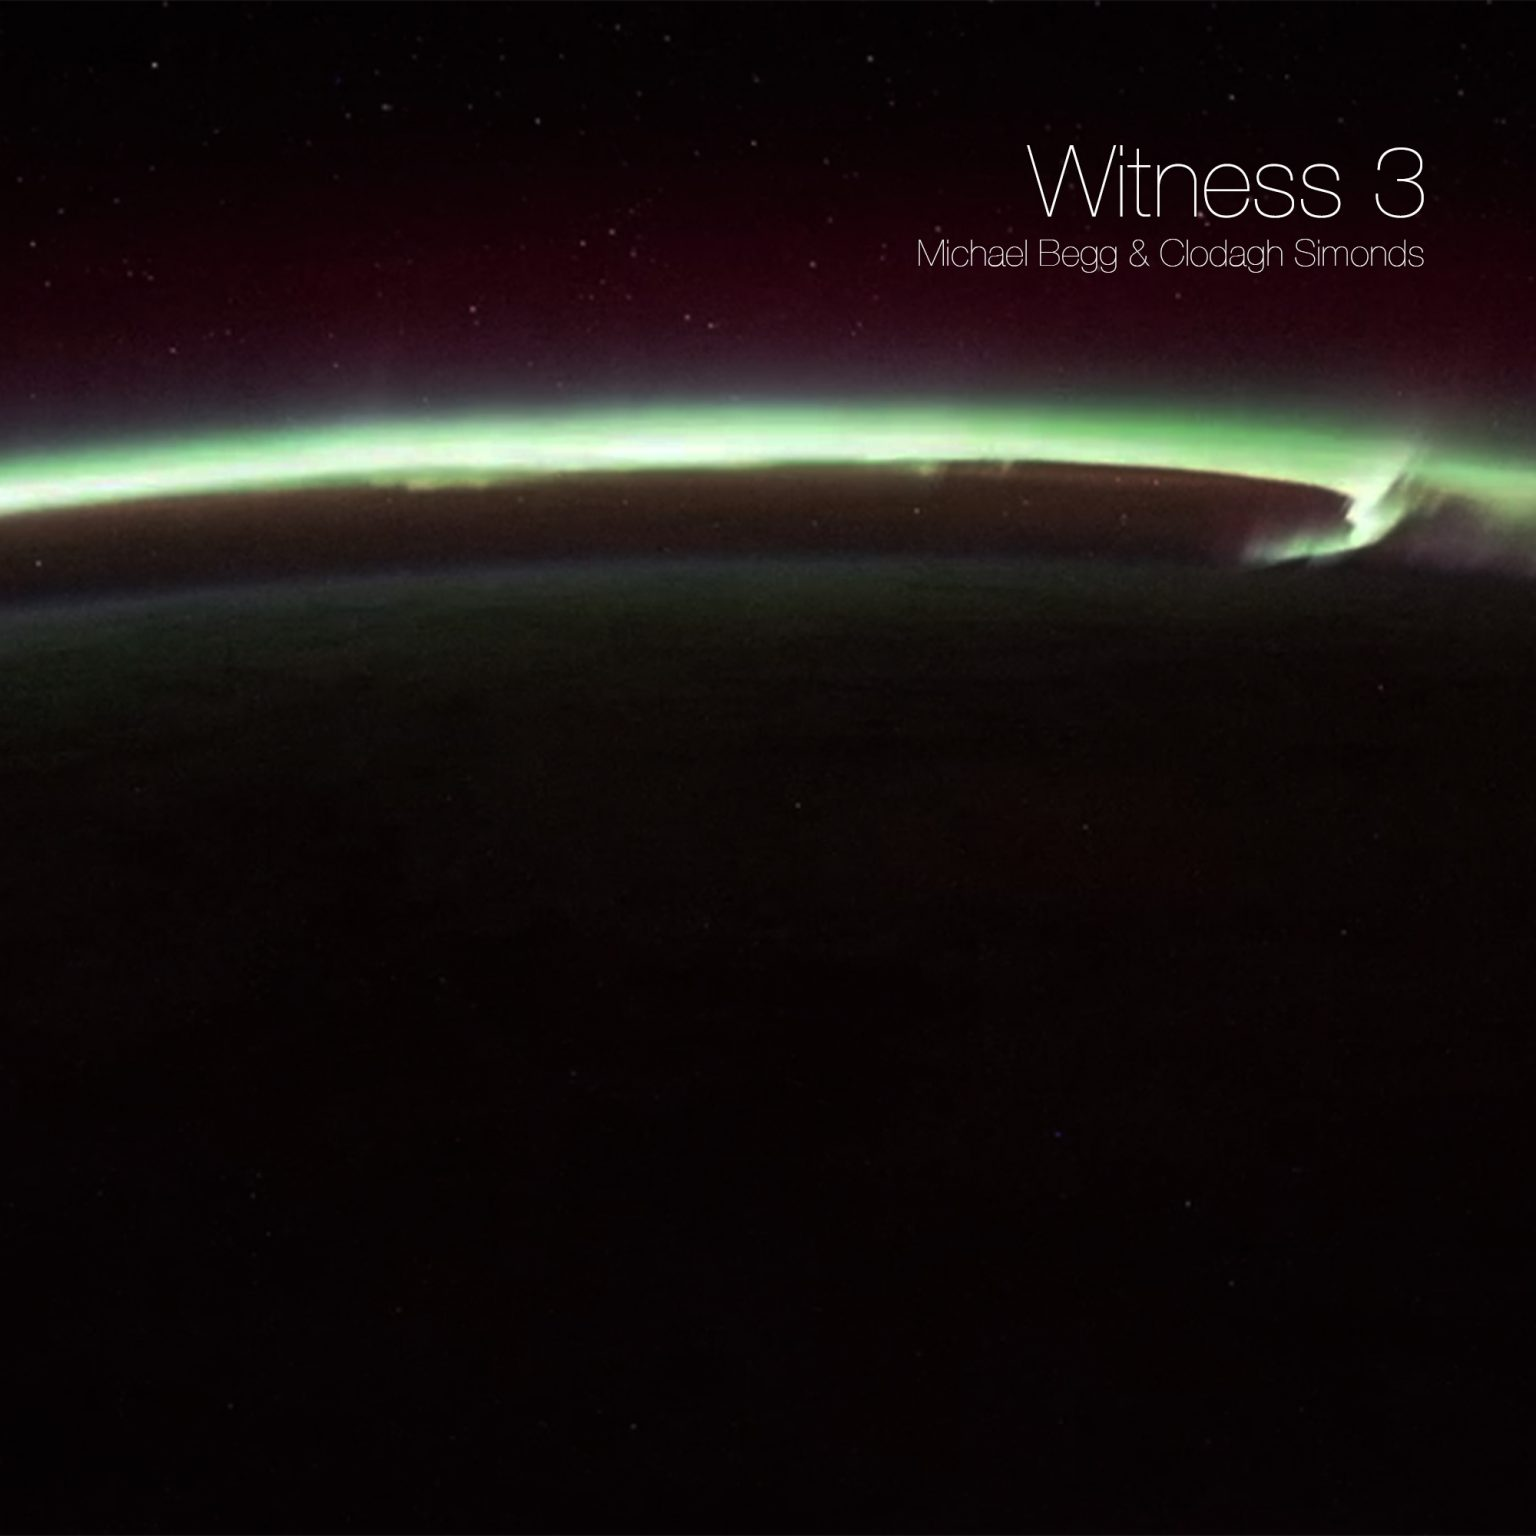 witness3Cover-1536x1536